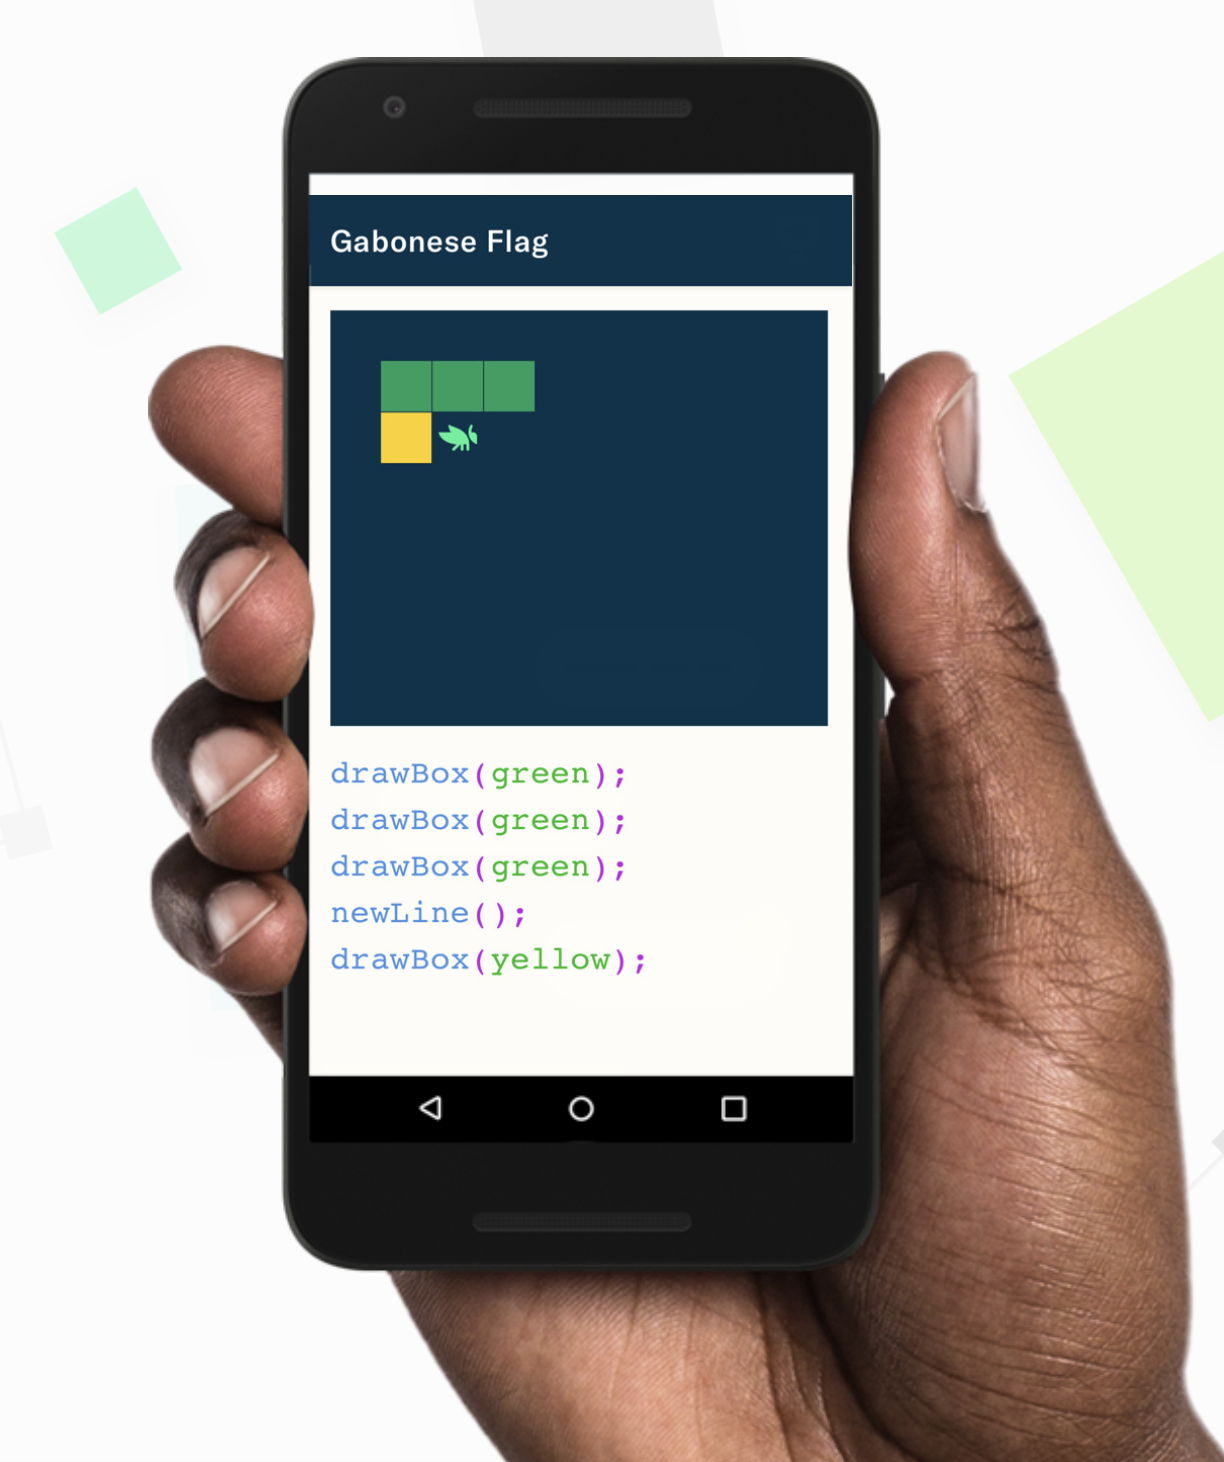 Learn To Code For Free With Google's New